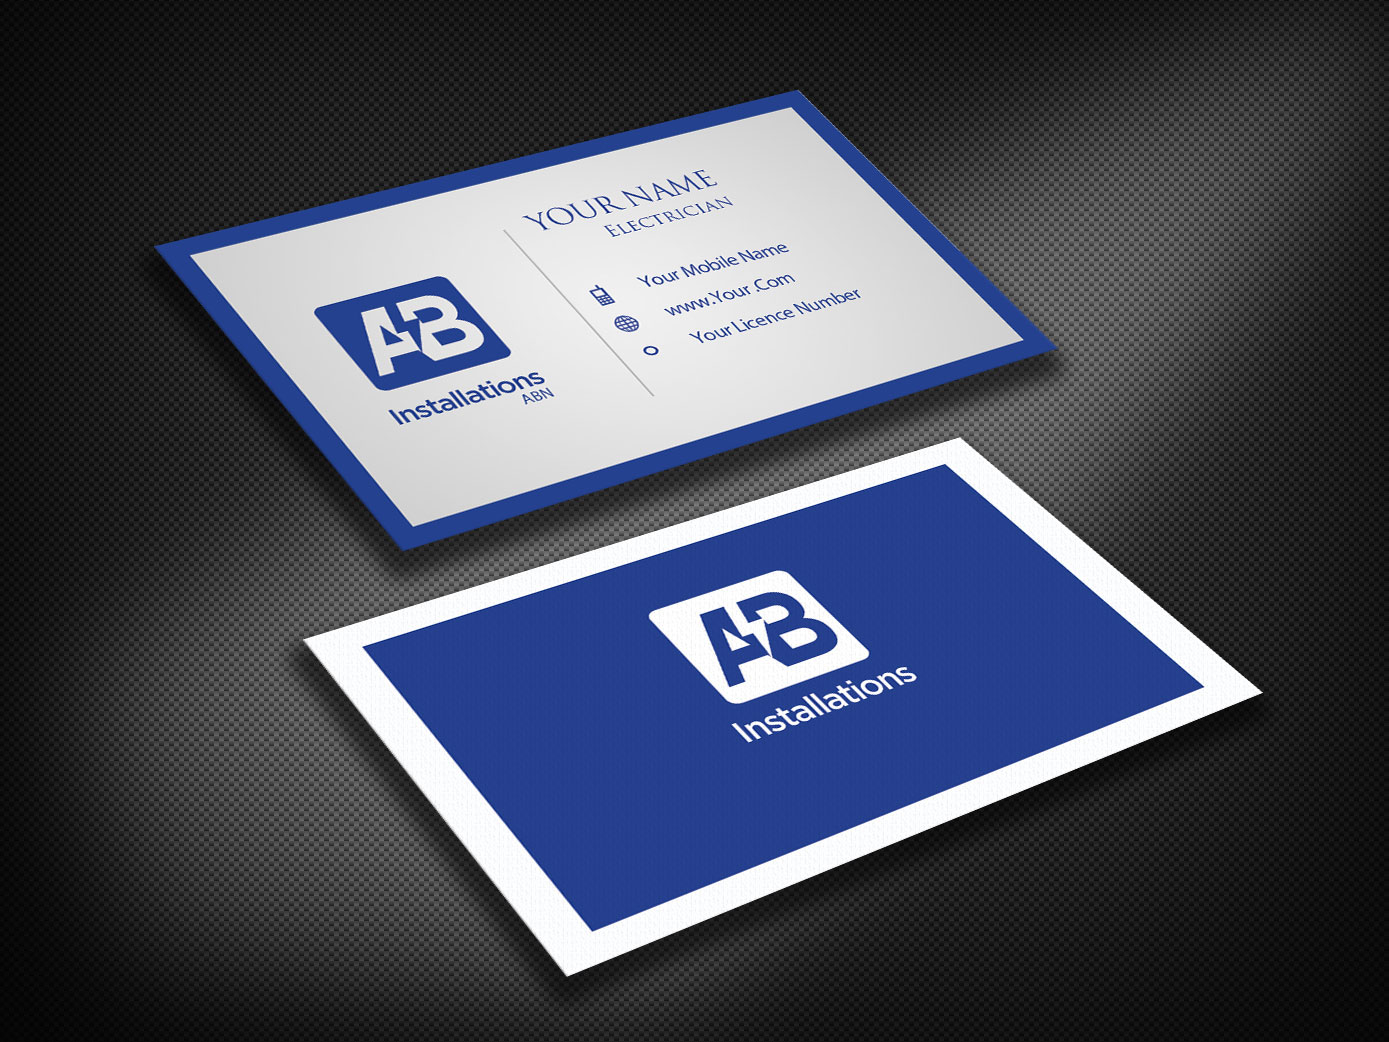 Business Card Design for AB Installations by Pawana | Design #4510918